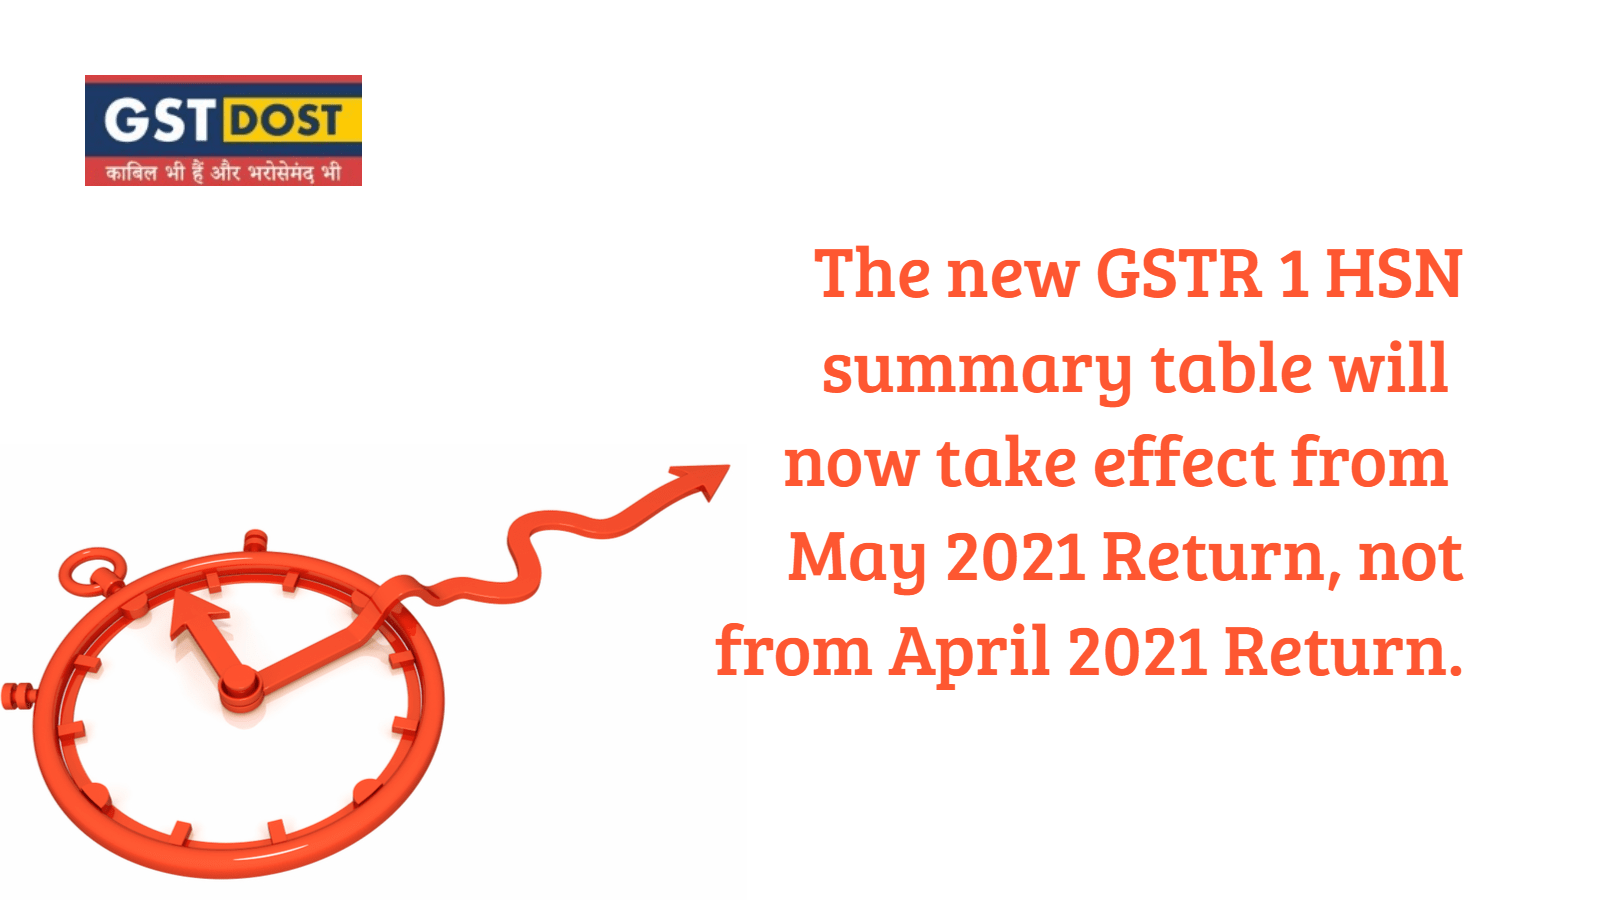 The new GSTR 1 HSN summary table will now take effect from May'21 Return, not from April'21 return.